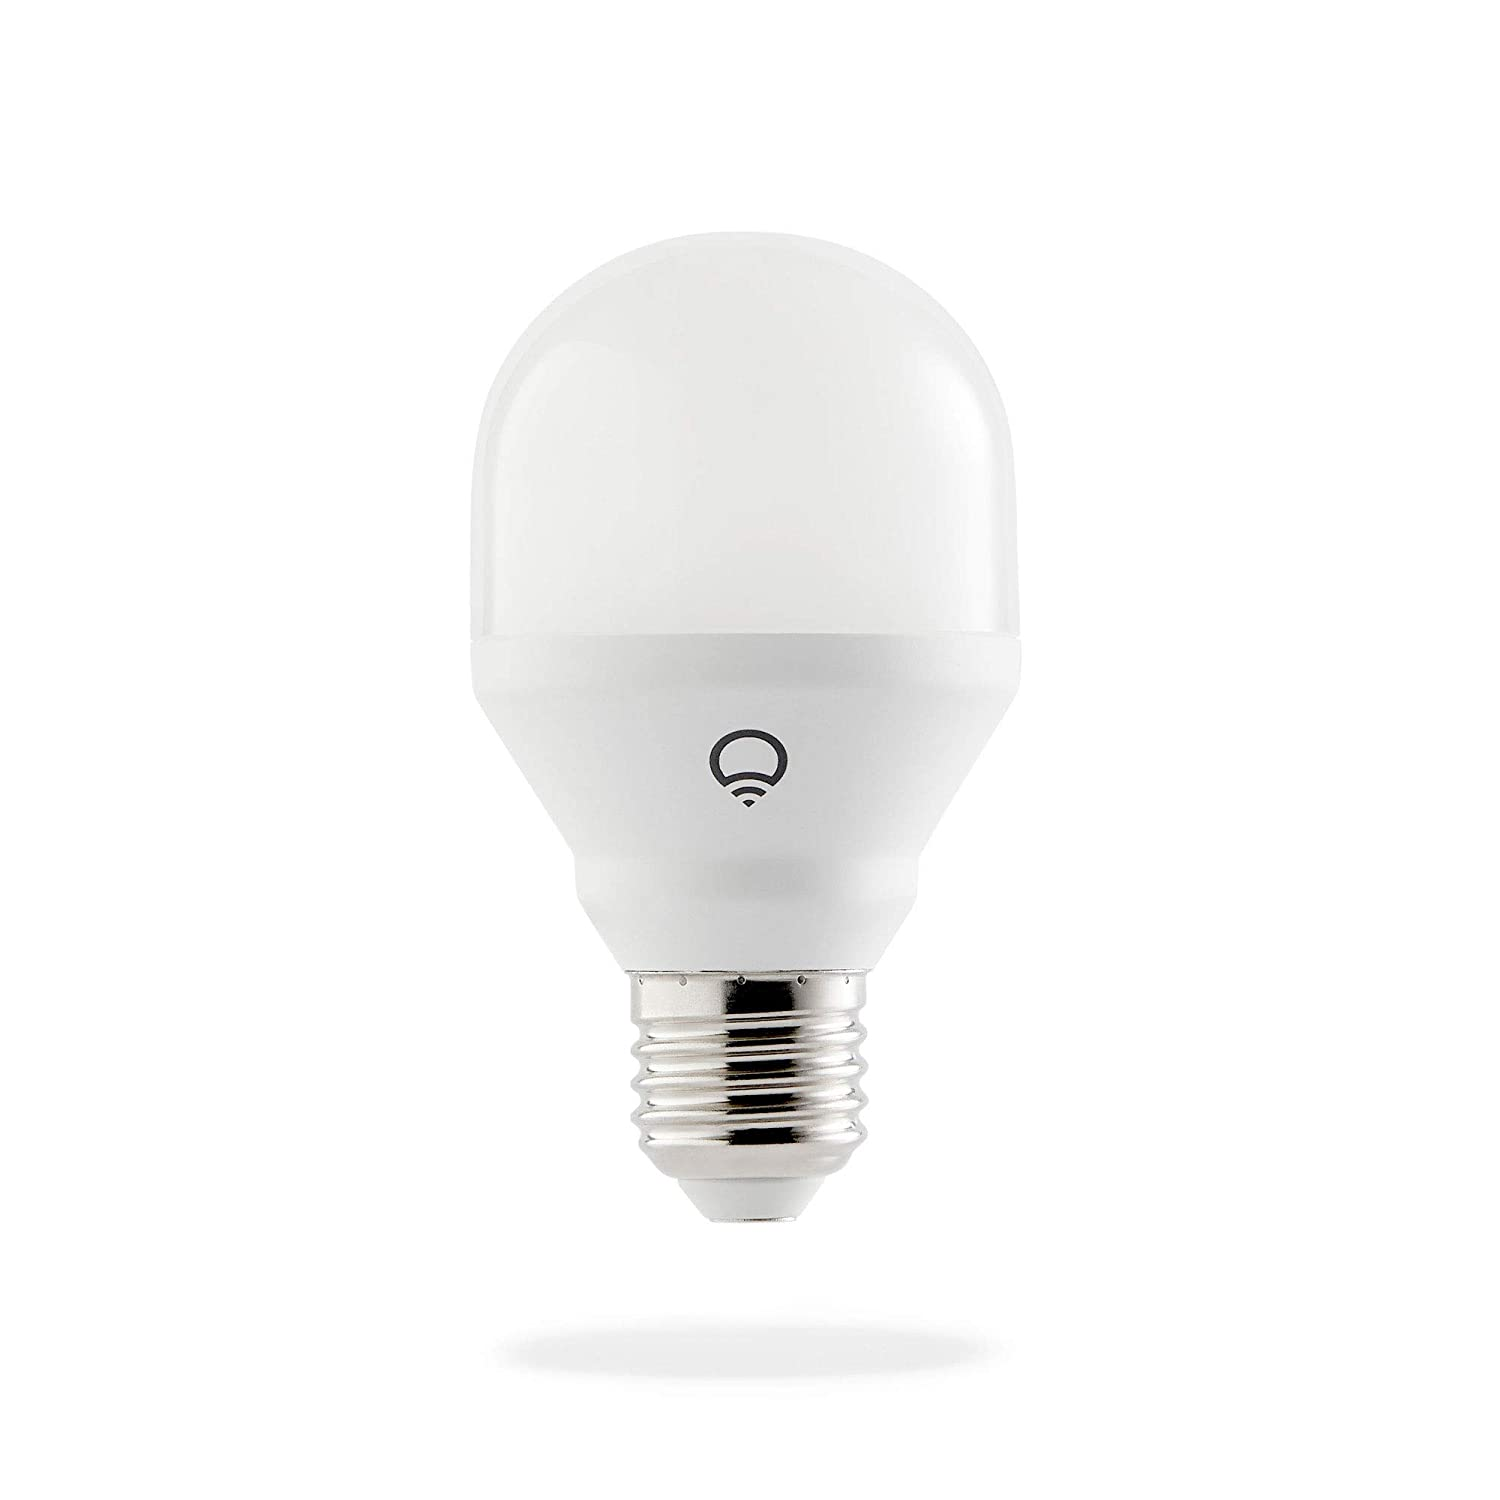 Latest Generation LIFX L3A19MW06E26 Mini No Hub Required Works with Alexa Dimmable The Google Assistant /& Microsoft Cortana Wi-Fi Smart Led Light Bulb 1 Pack Warm White Apple Home Kit A19